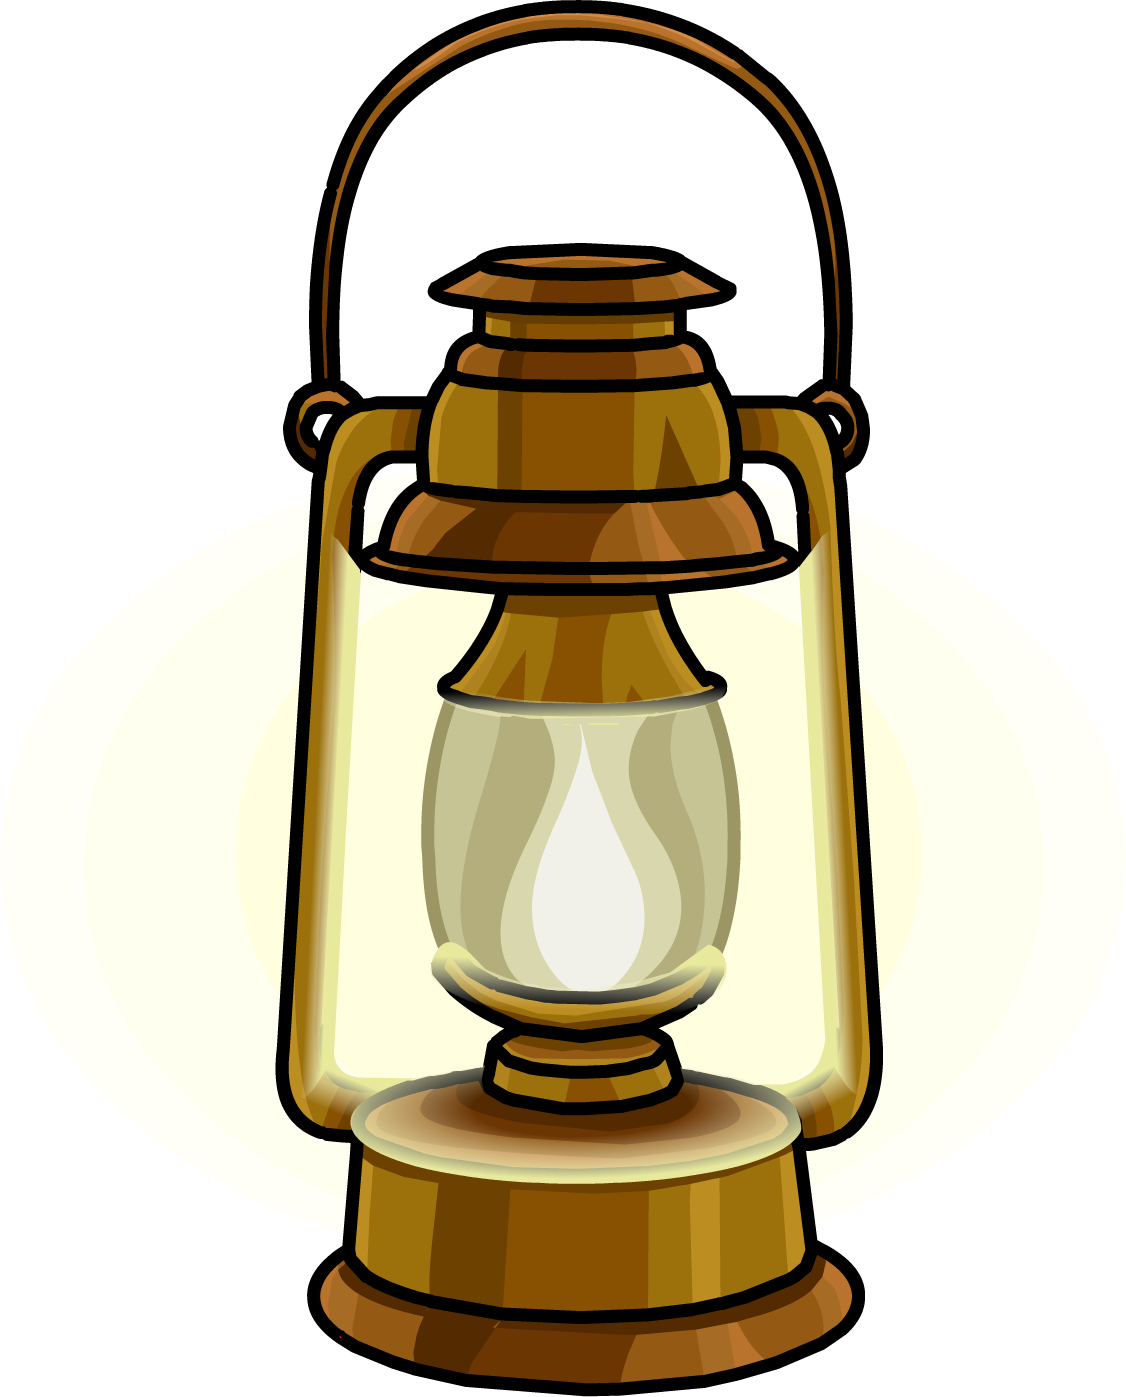 Old oil lamps png. Lamp clipart railroad lantern